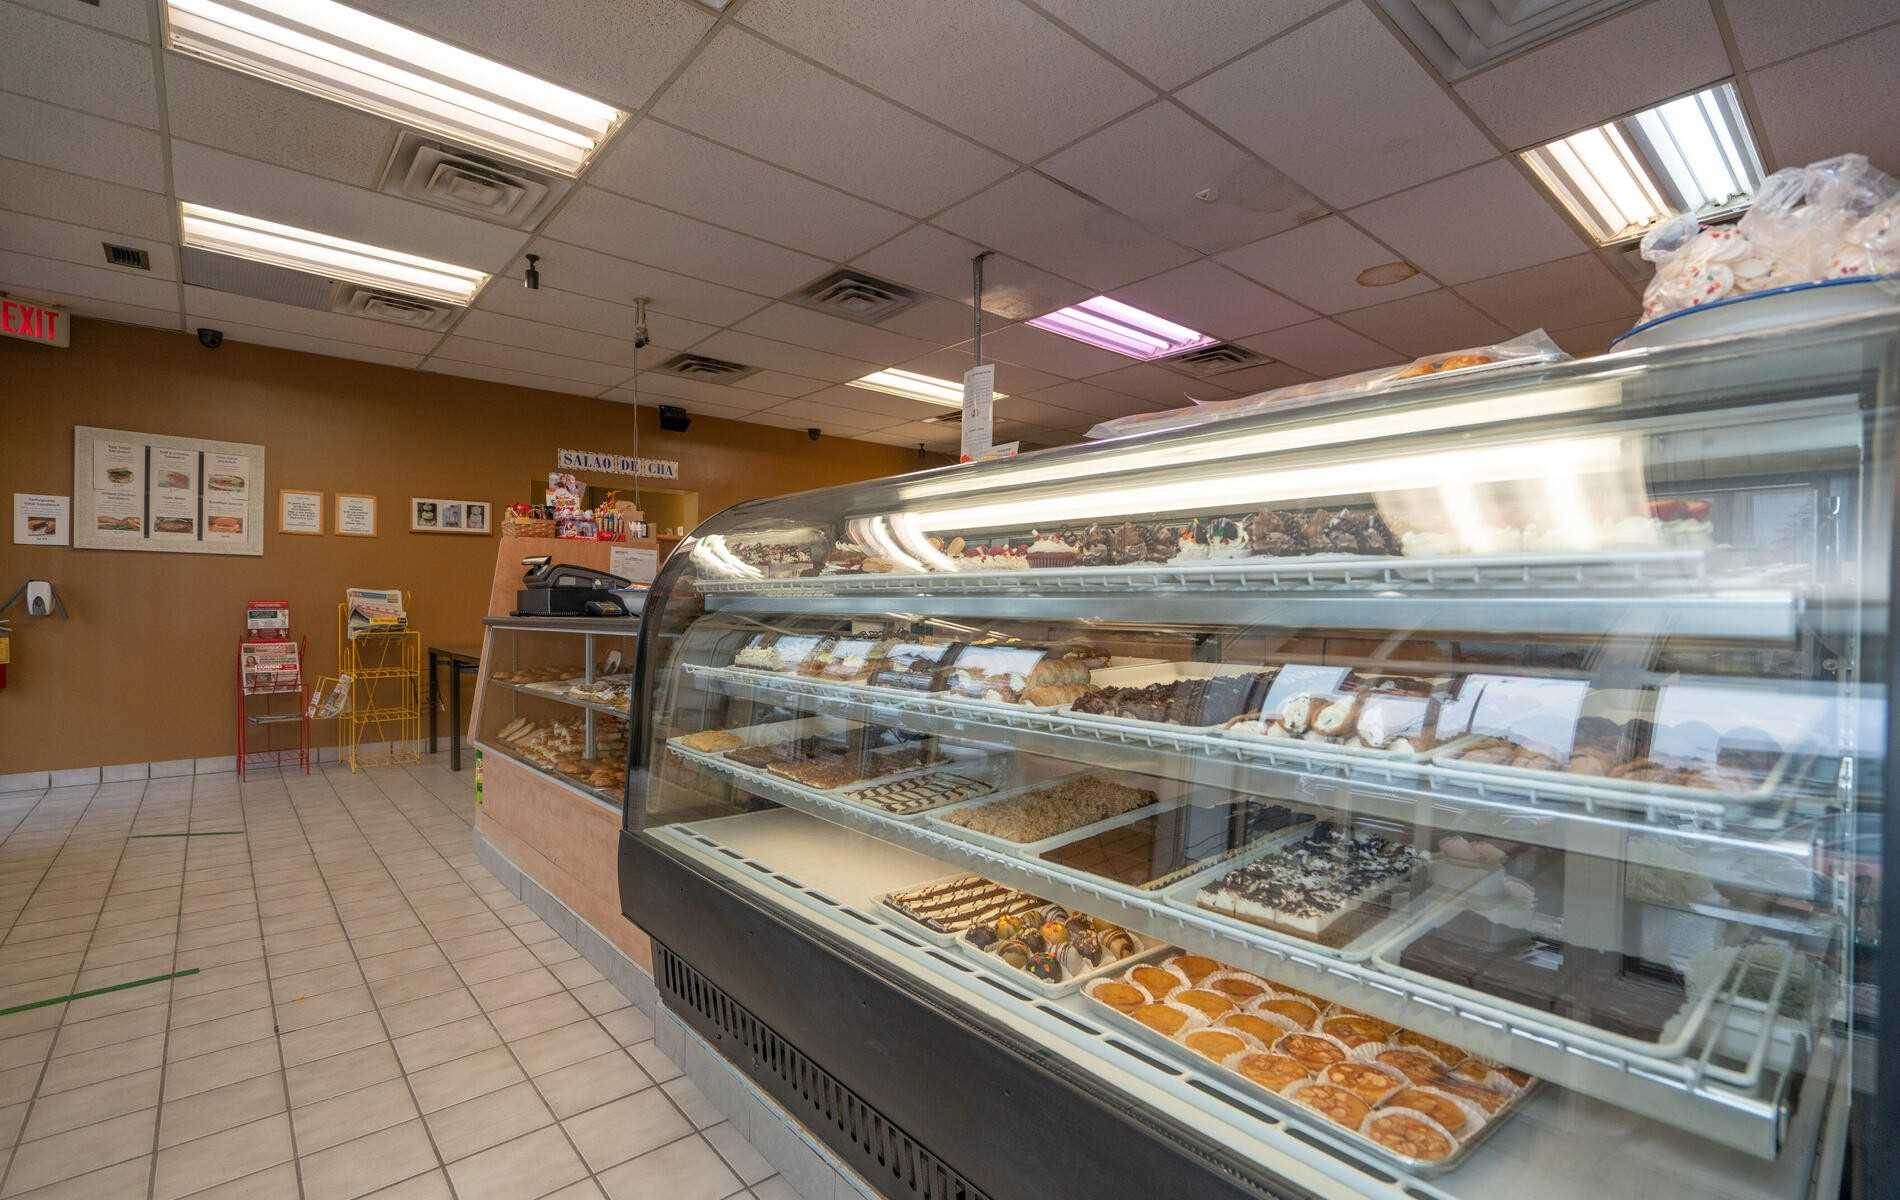 4 Mclaughlin Rd S in Brampton - Commercial For Sale : MLS# w5140894 Photo 2